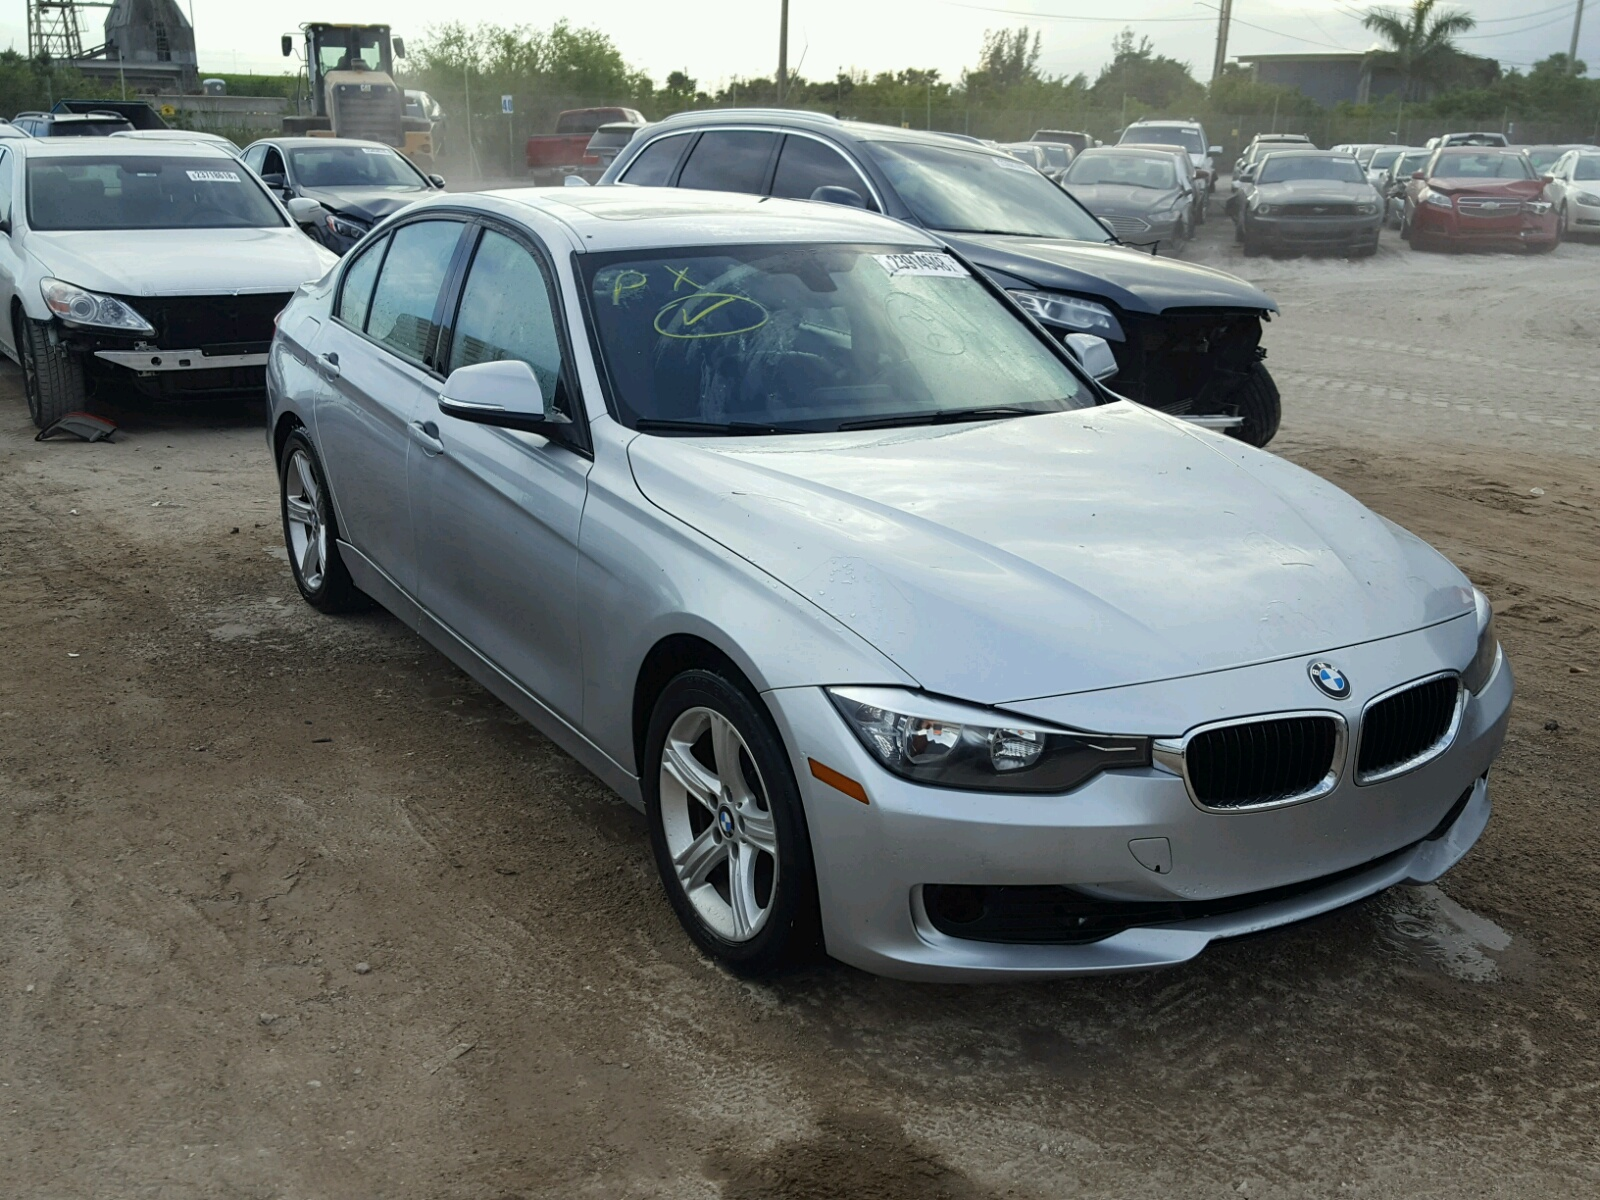 Auto Auction Ended On VIN WBACGXDNR BMW I SULE - Bmw 2013 328